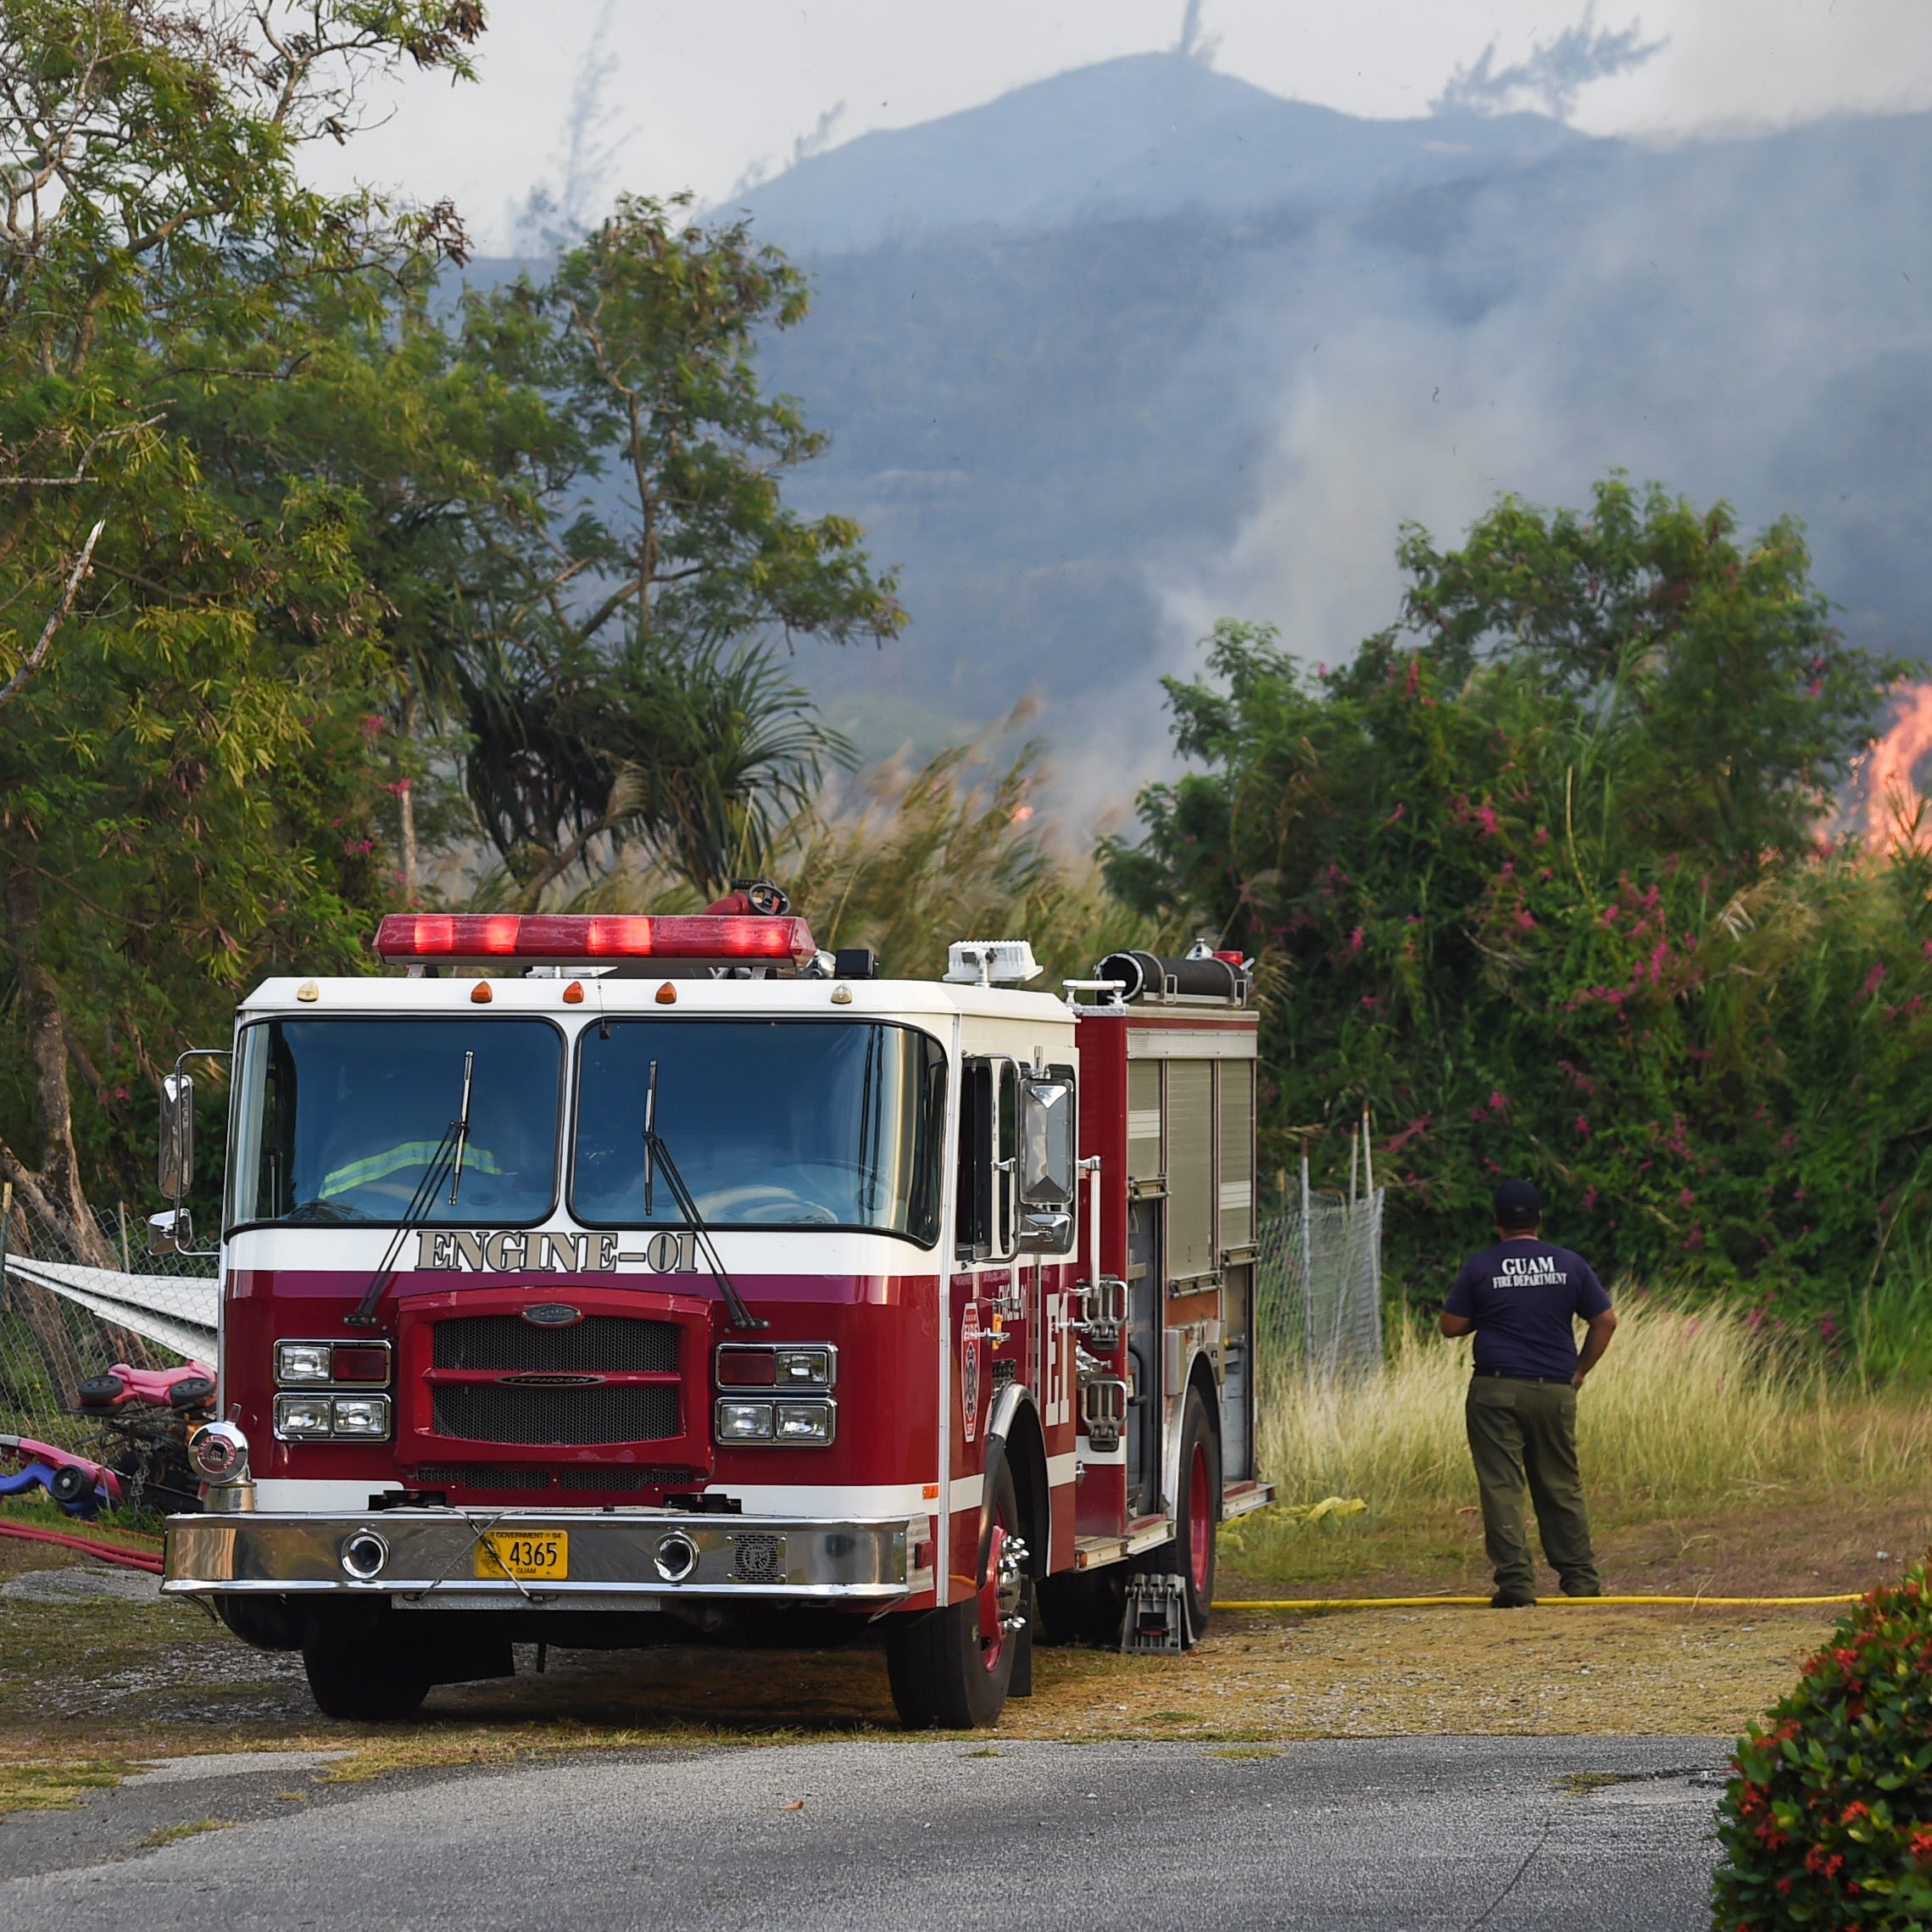 Guam Fire Department extinguishes two grass fires in Barrigada and Santa Rita